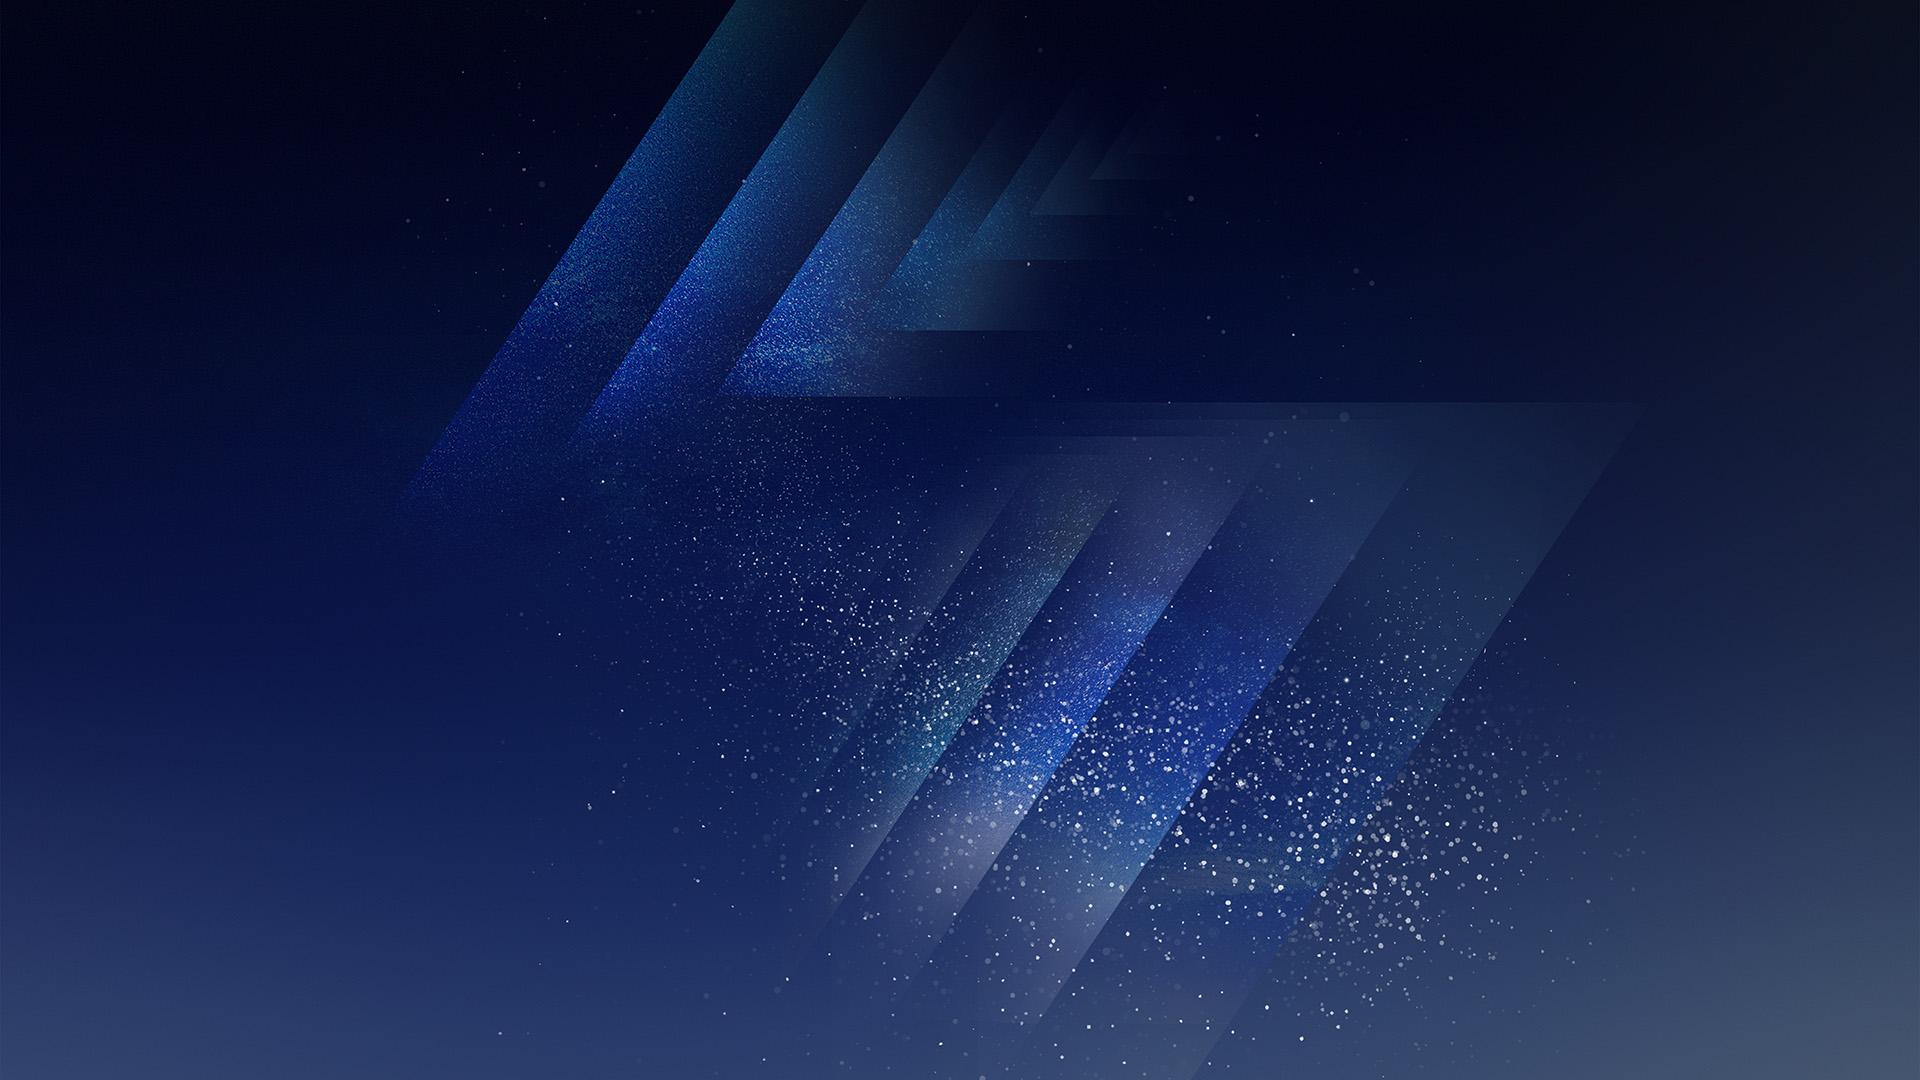 Vw07 Galaxy S8 Android Dark Star Pattern Background Wallpaper